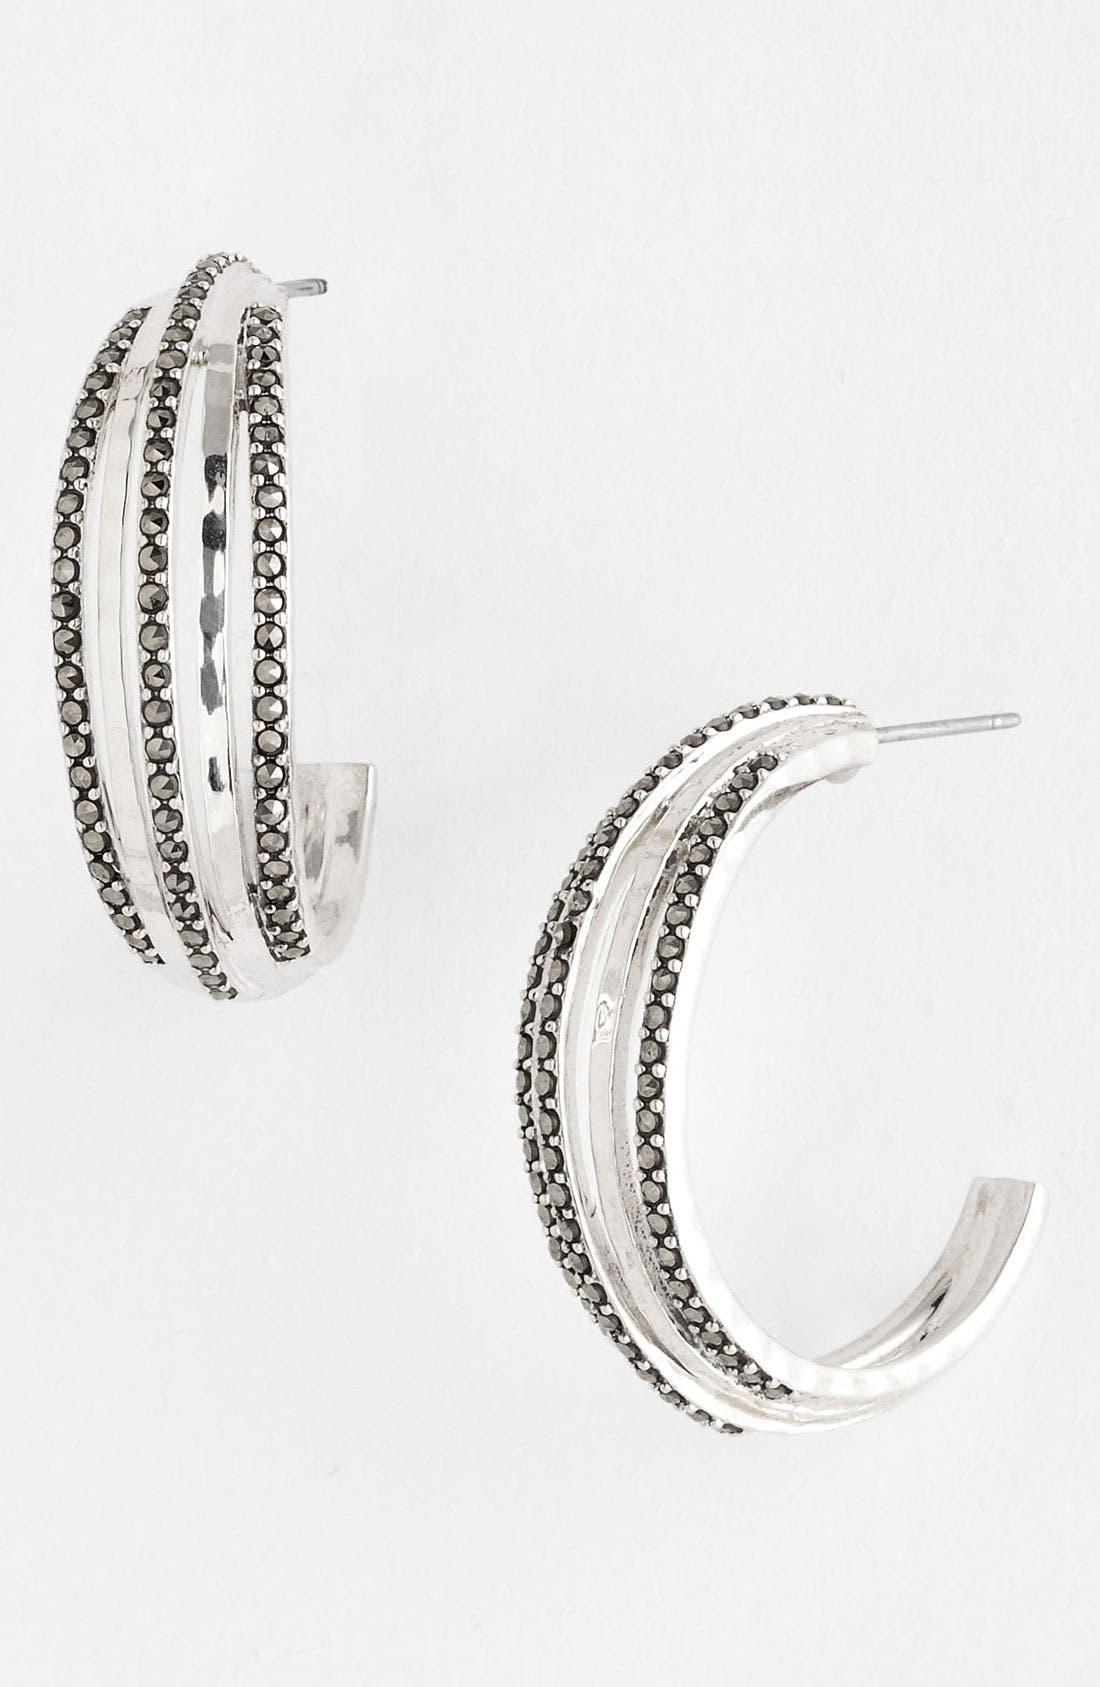 Alternate Image 1 Selected - Judith Jack 'Fluidity' Hoop Earrings